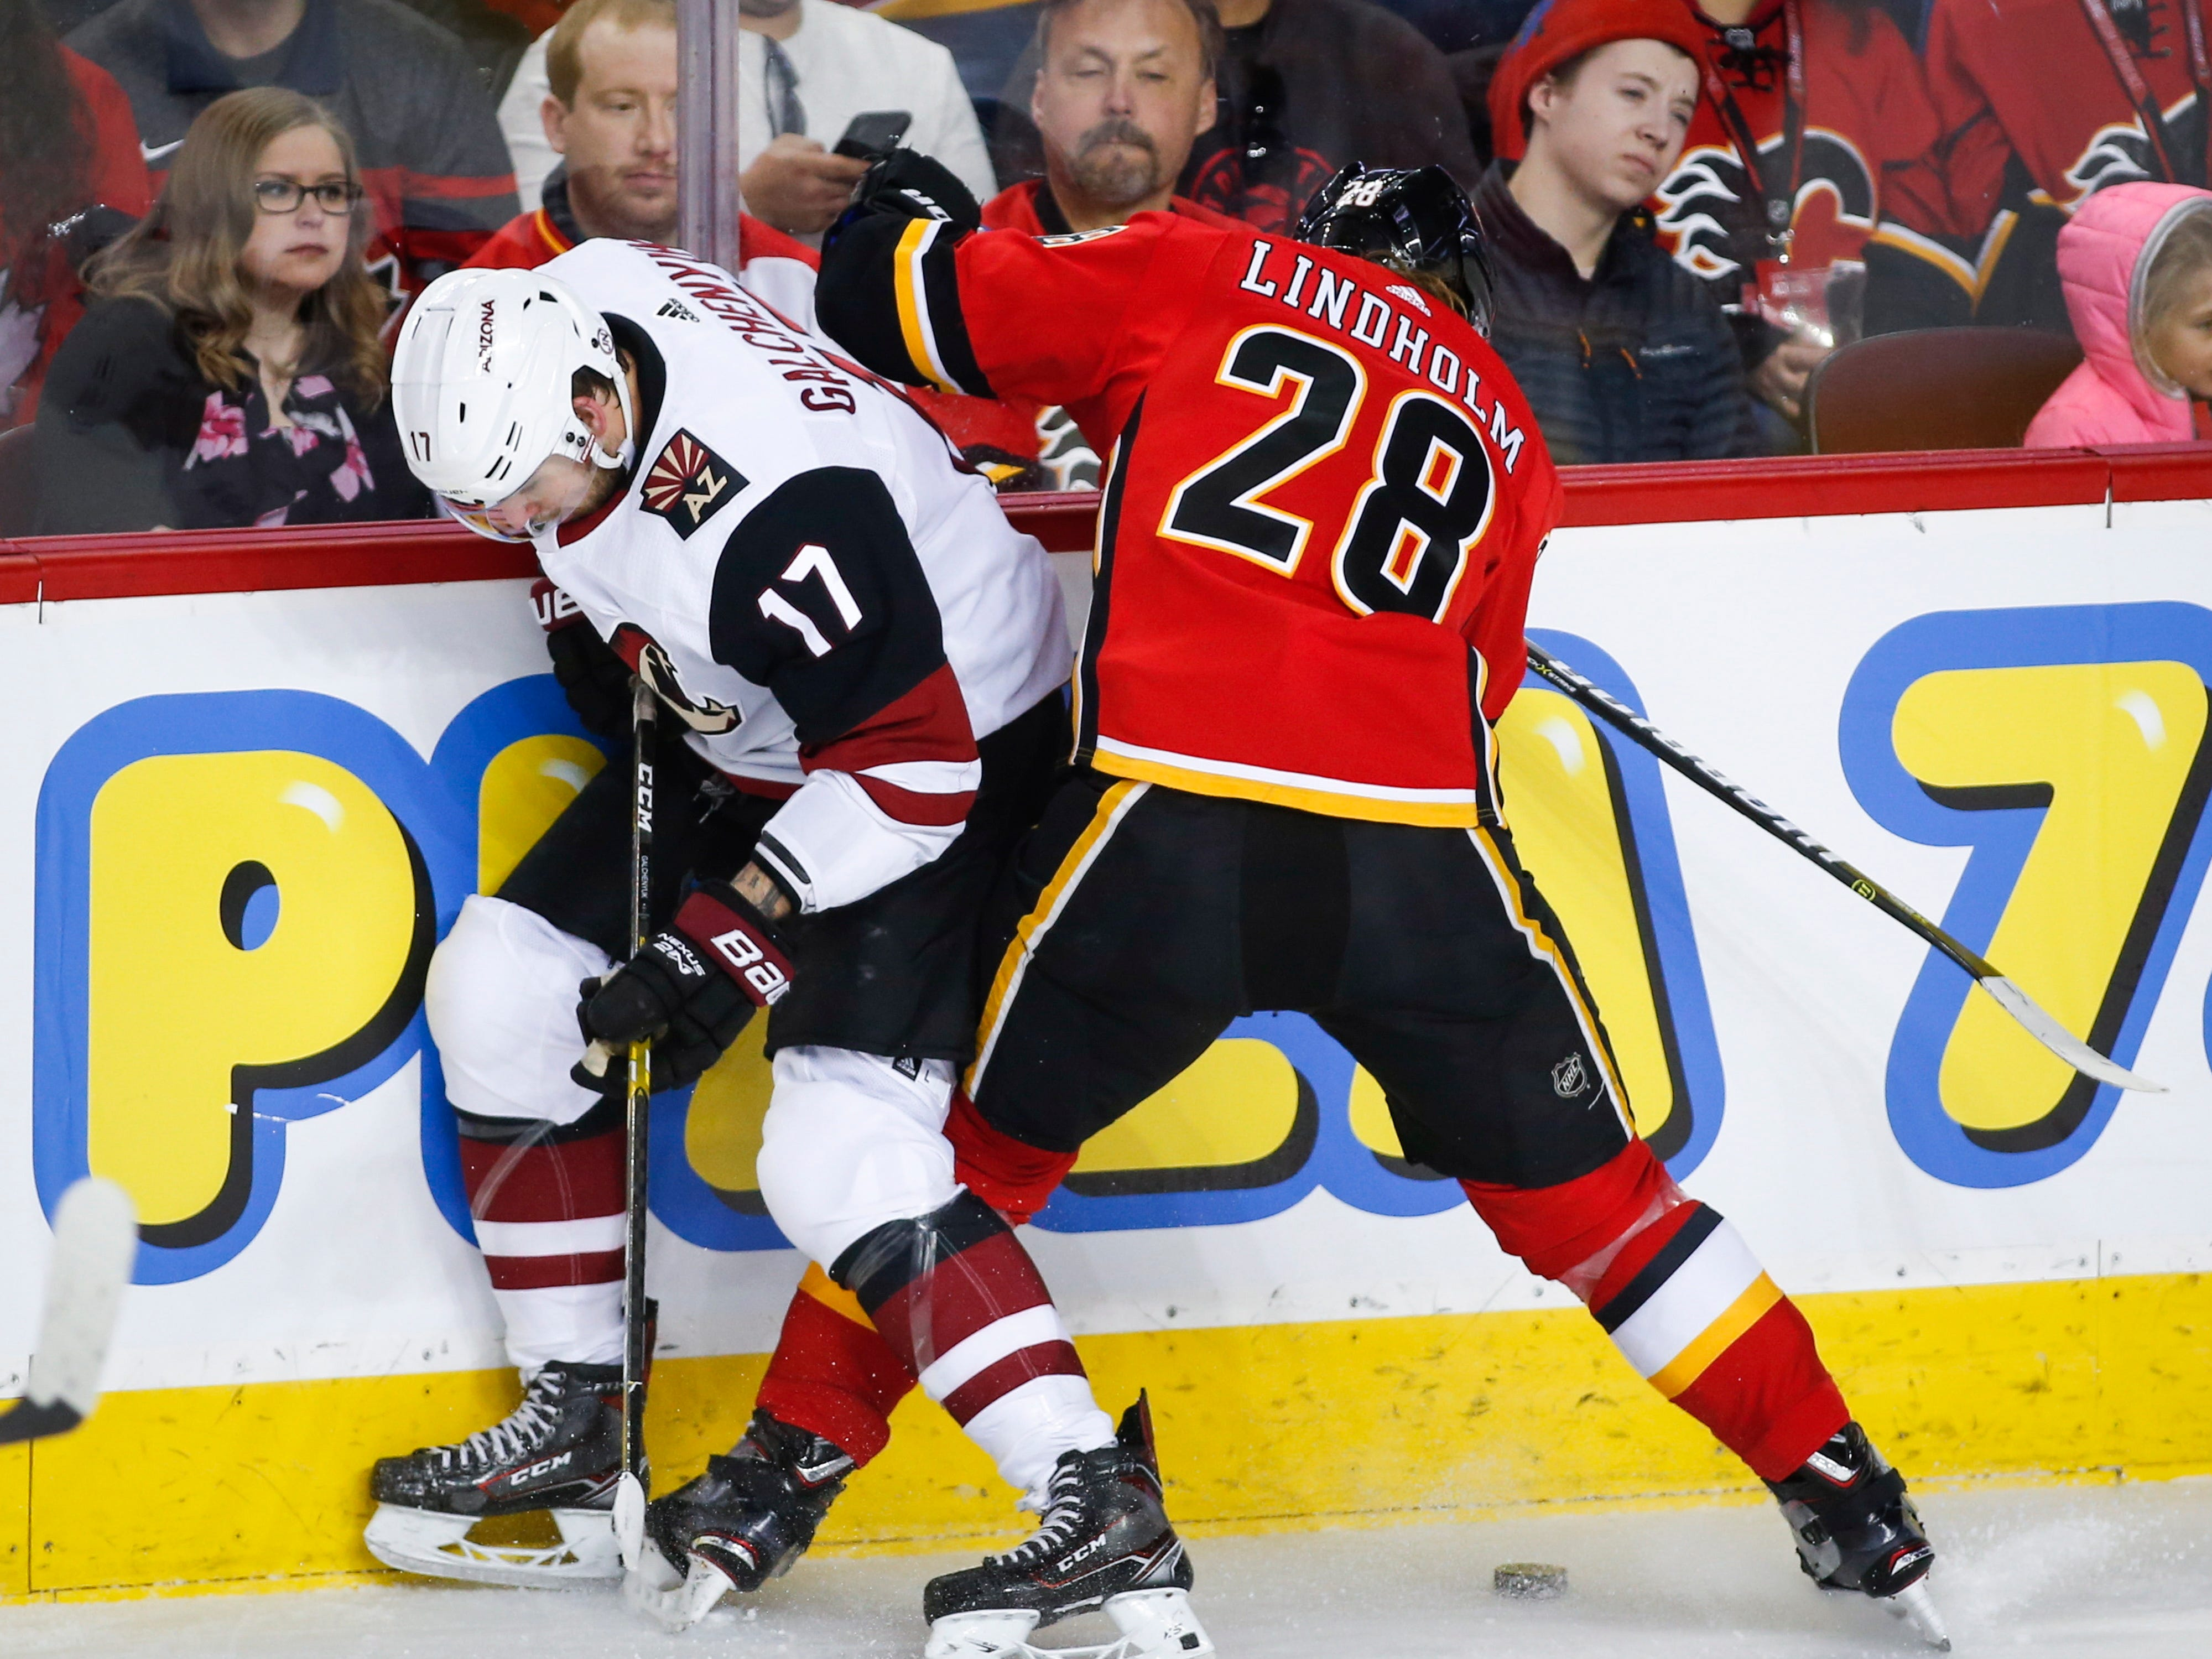 Arizona Coyotes' Alex Galchenyuk, left, battles for the puck with Calgary Flames' Elias Lindholm, of Sweden, during first period NHL hockey action in Calgary,  Calgary, Alberta, Monday, Feb. 18, 2019.